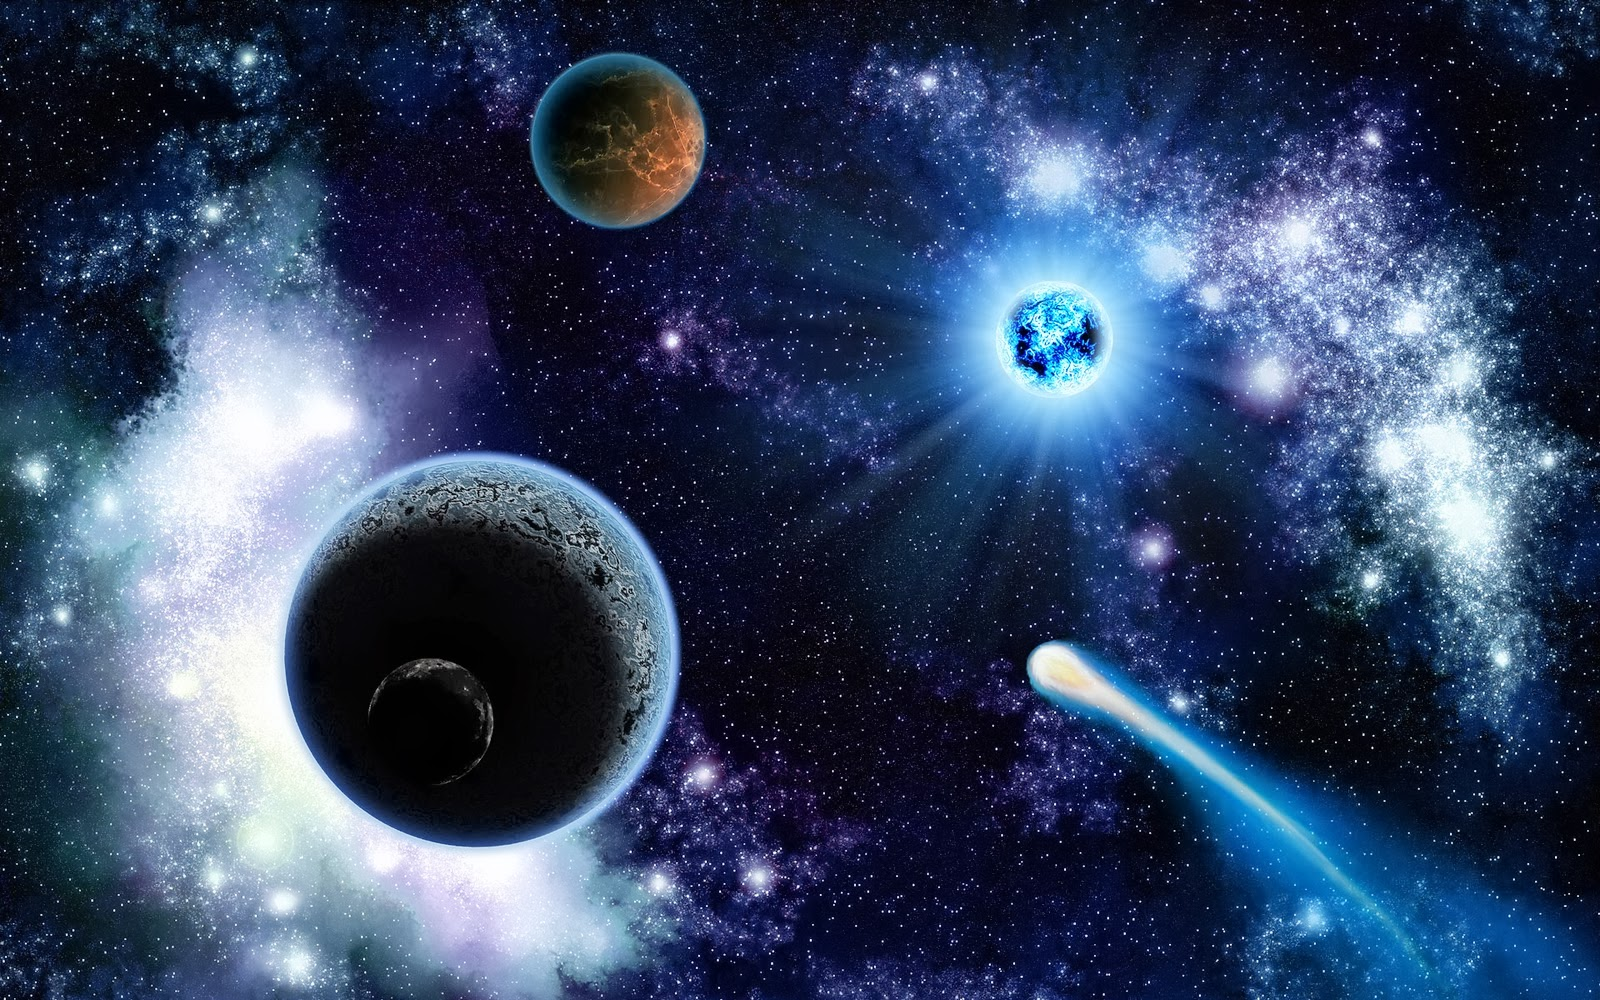 Space Wallpapers High Resolution: Space Stars Wallpaper